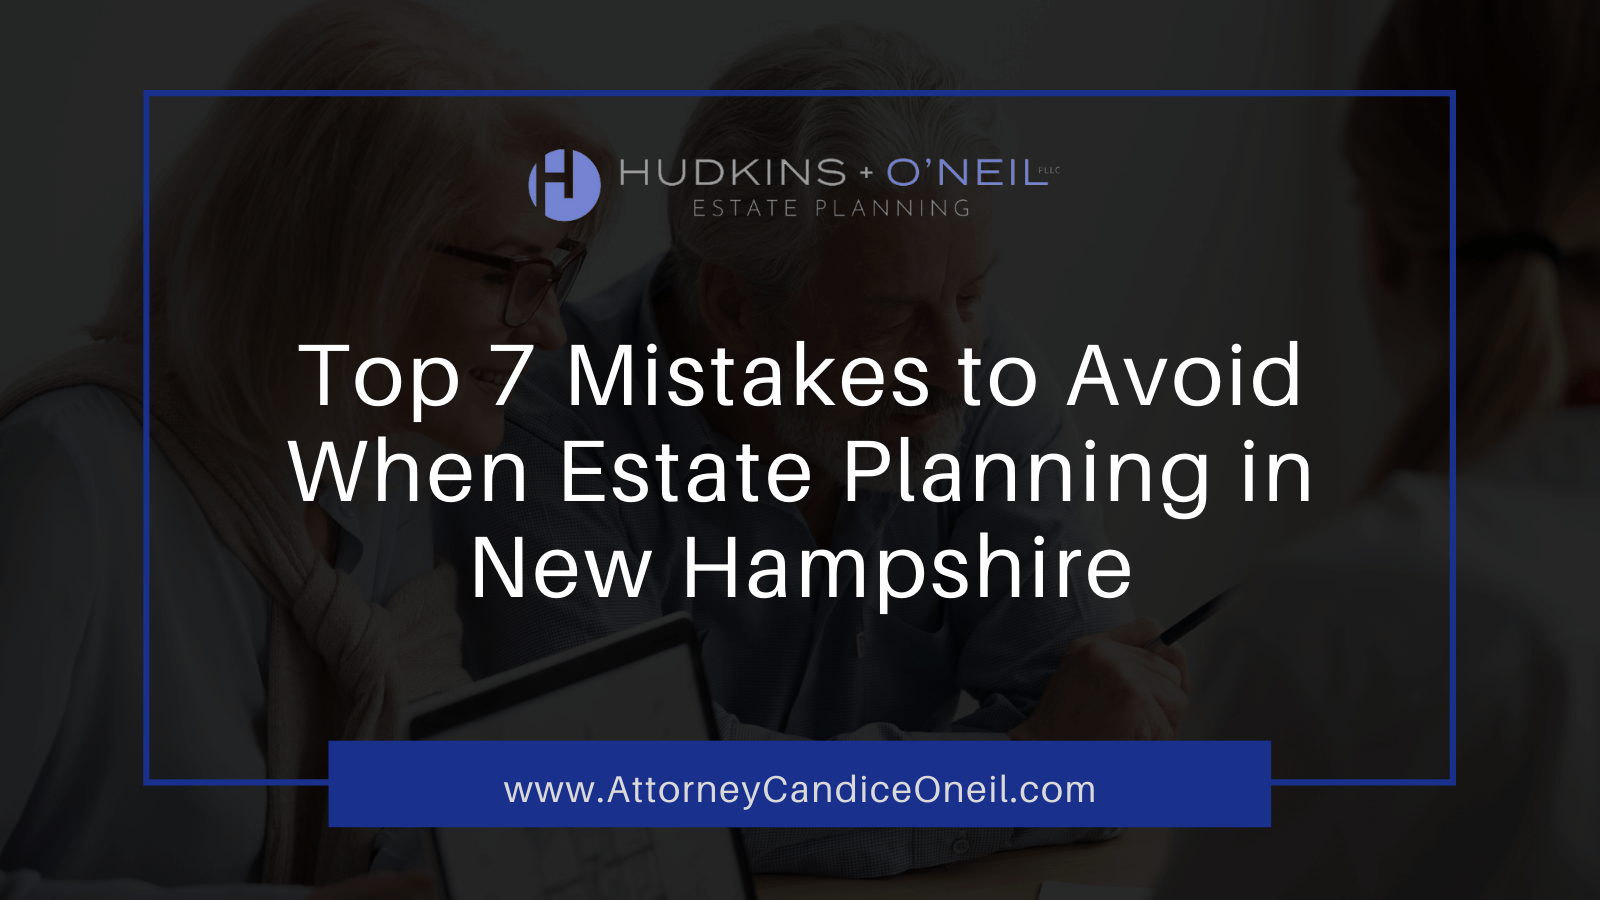 Top 7 Mistakes to Avoid When Estate Planning in New Hampshire